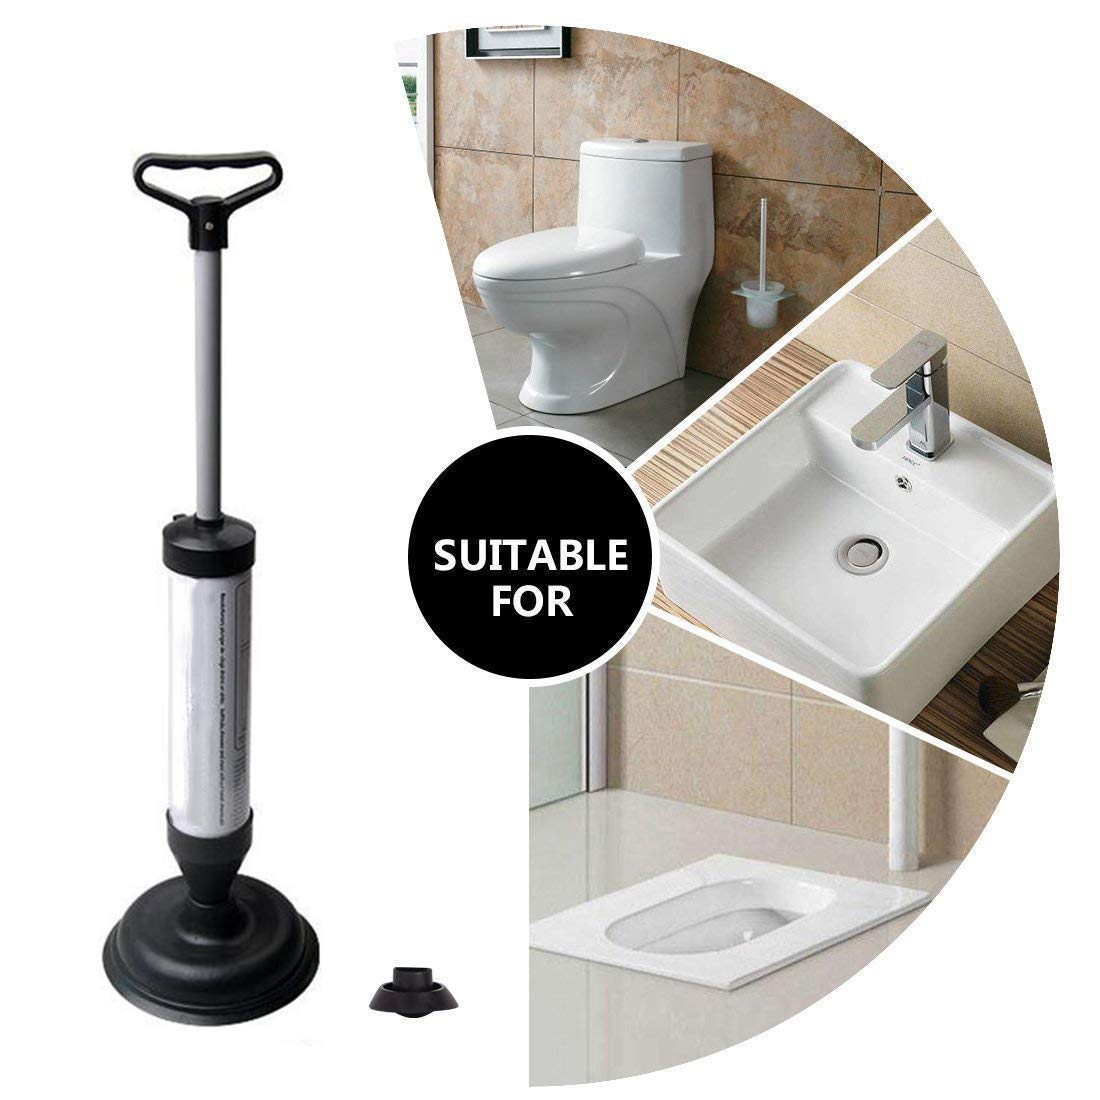 NDYD Pneumatic Drain Cleaner Toilet Dredge Plunger Bottle Opener Kitchen clogged Pipe/Bathtub Sink Cleaning Tools by NDYD